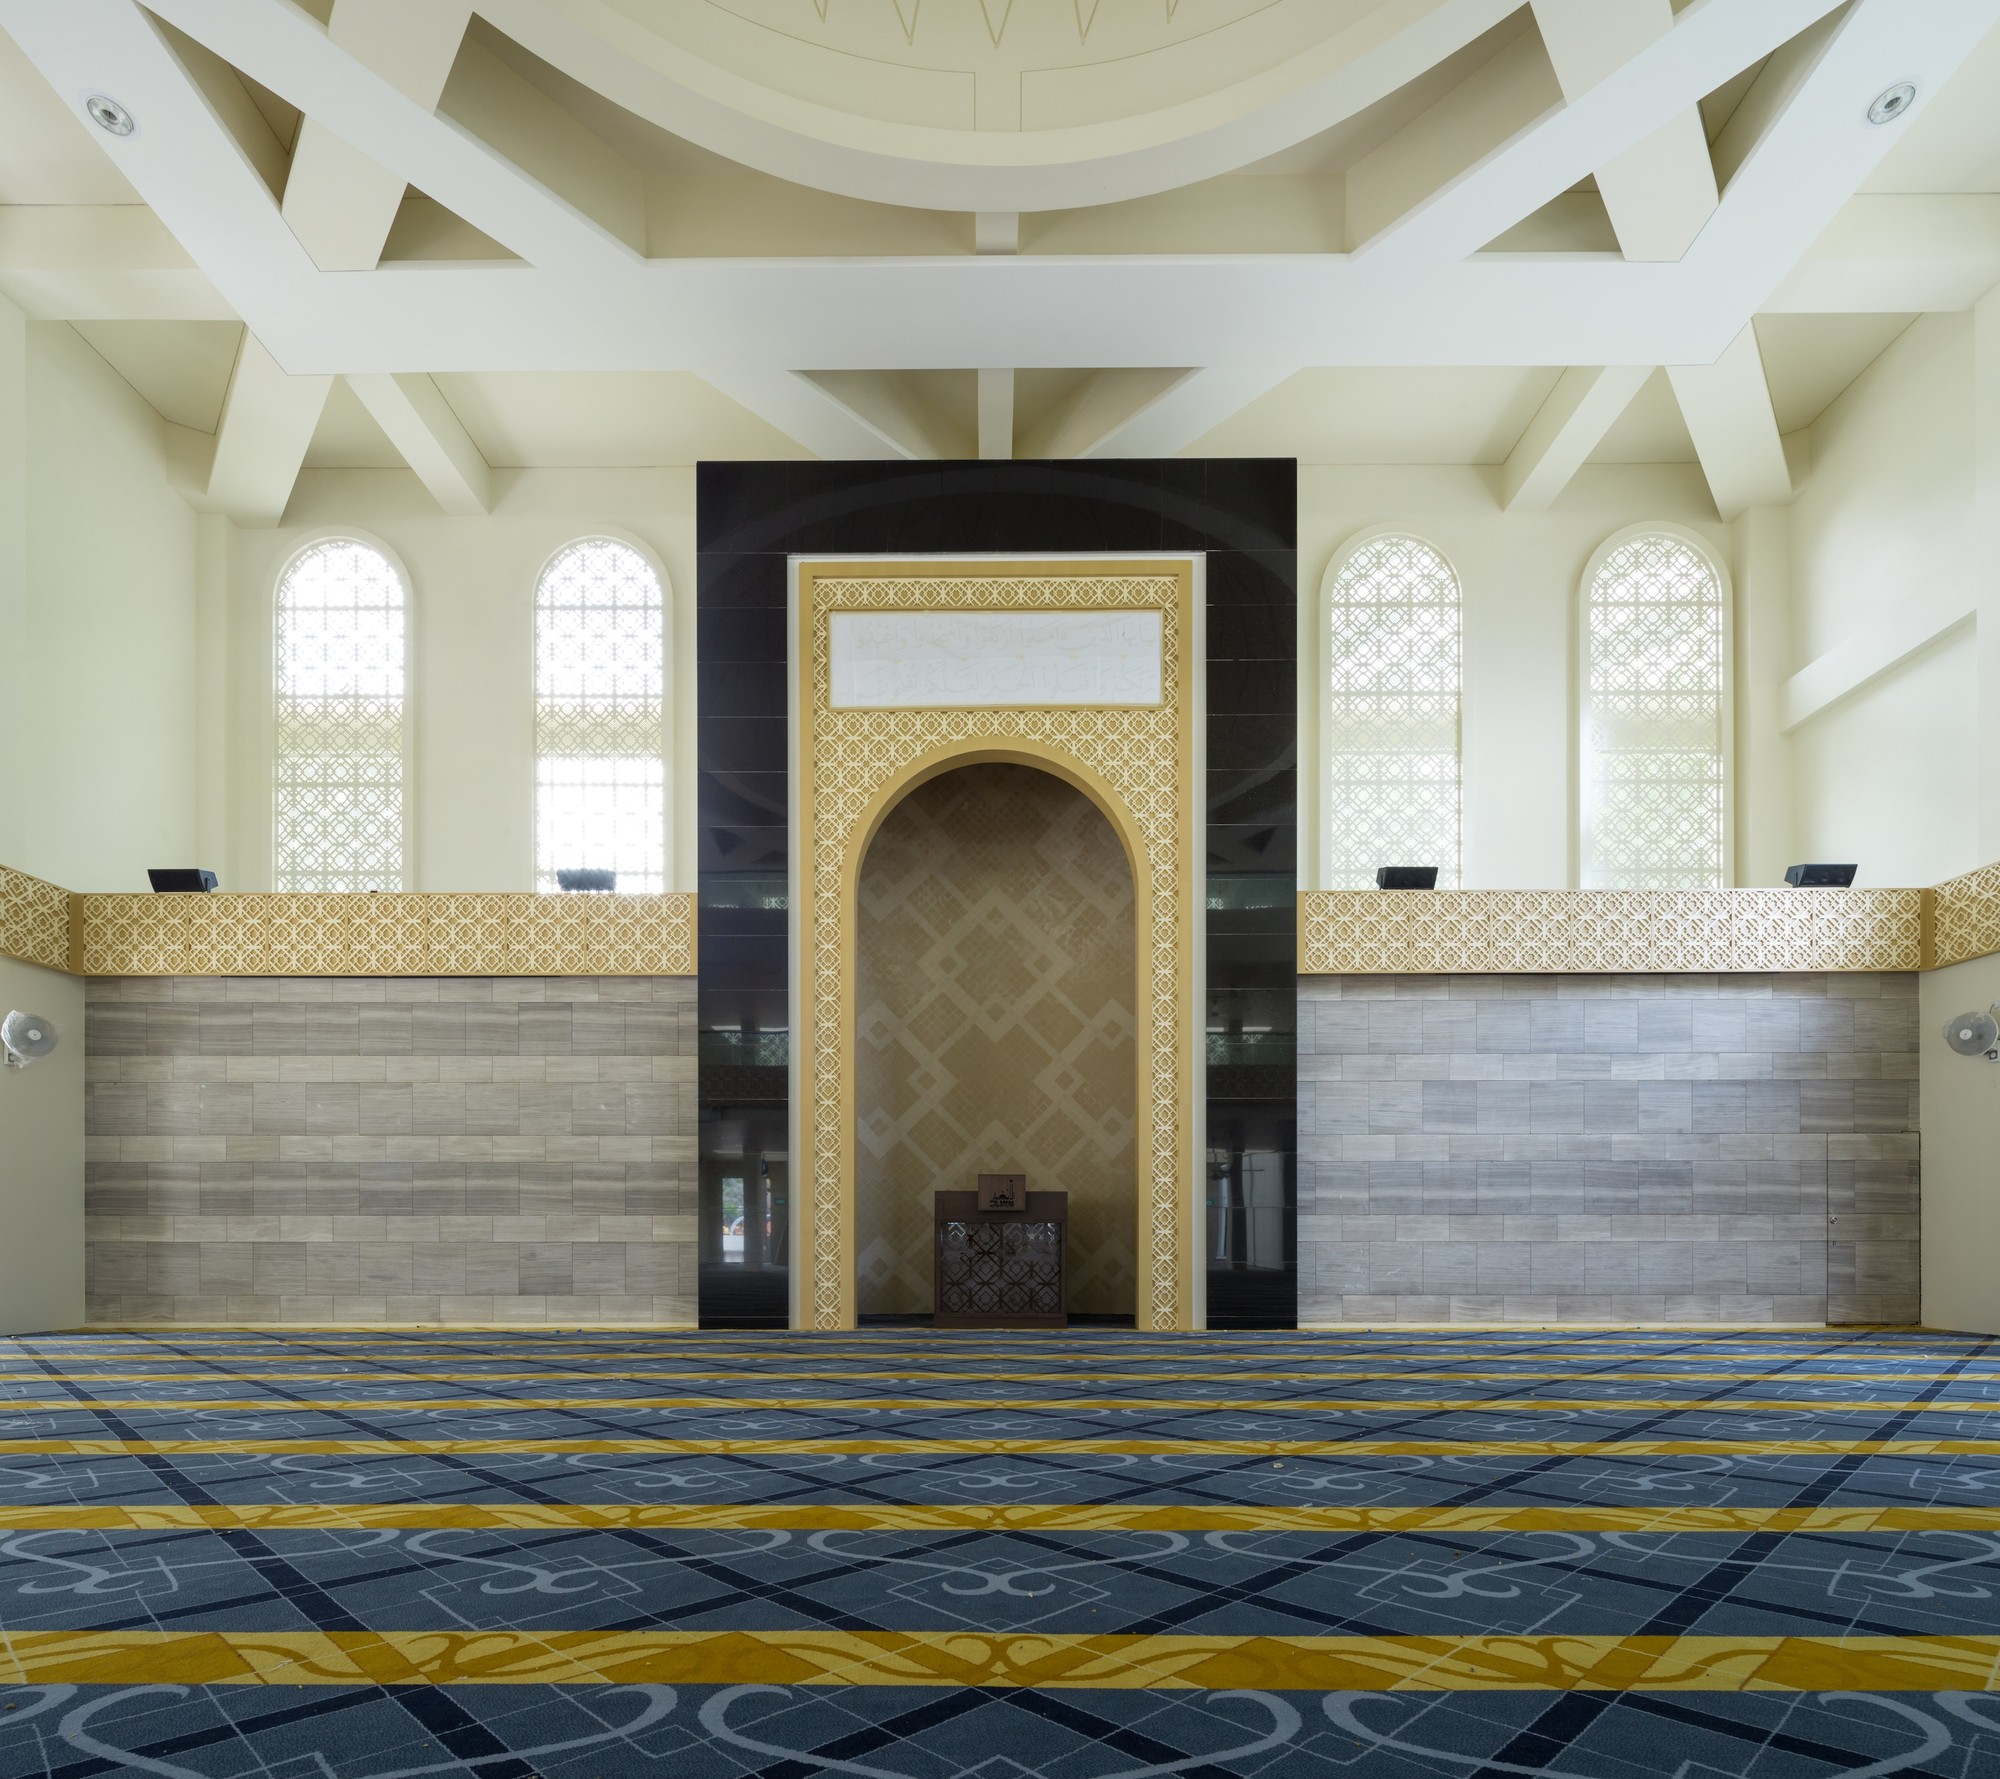 Gallery of al ansar mosque ong ong pte ltd 5 for Plaza interior designs ltd